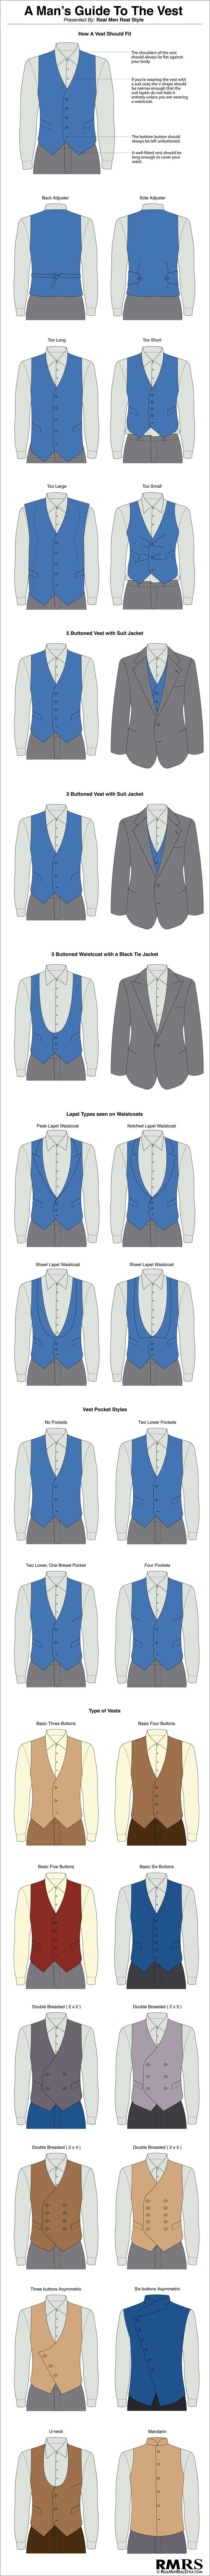 vest-style-guide, infographics of ultimate guide to the vest